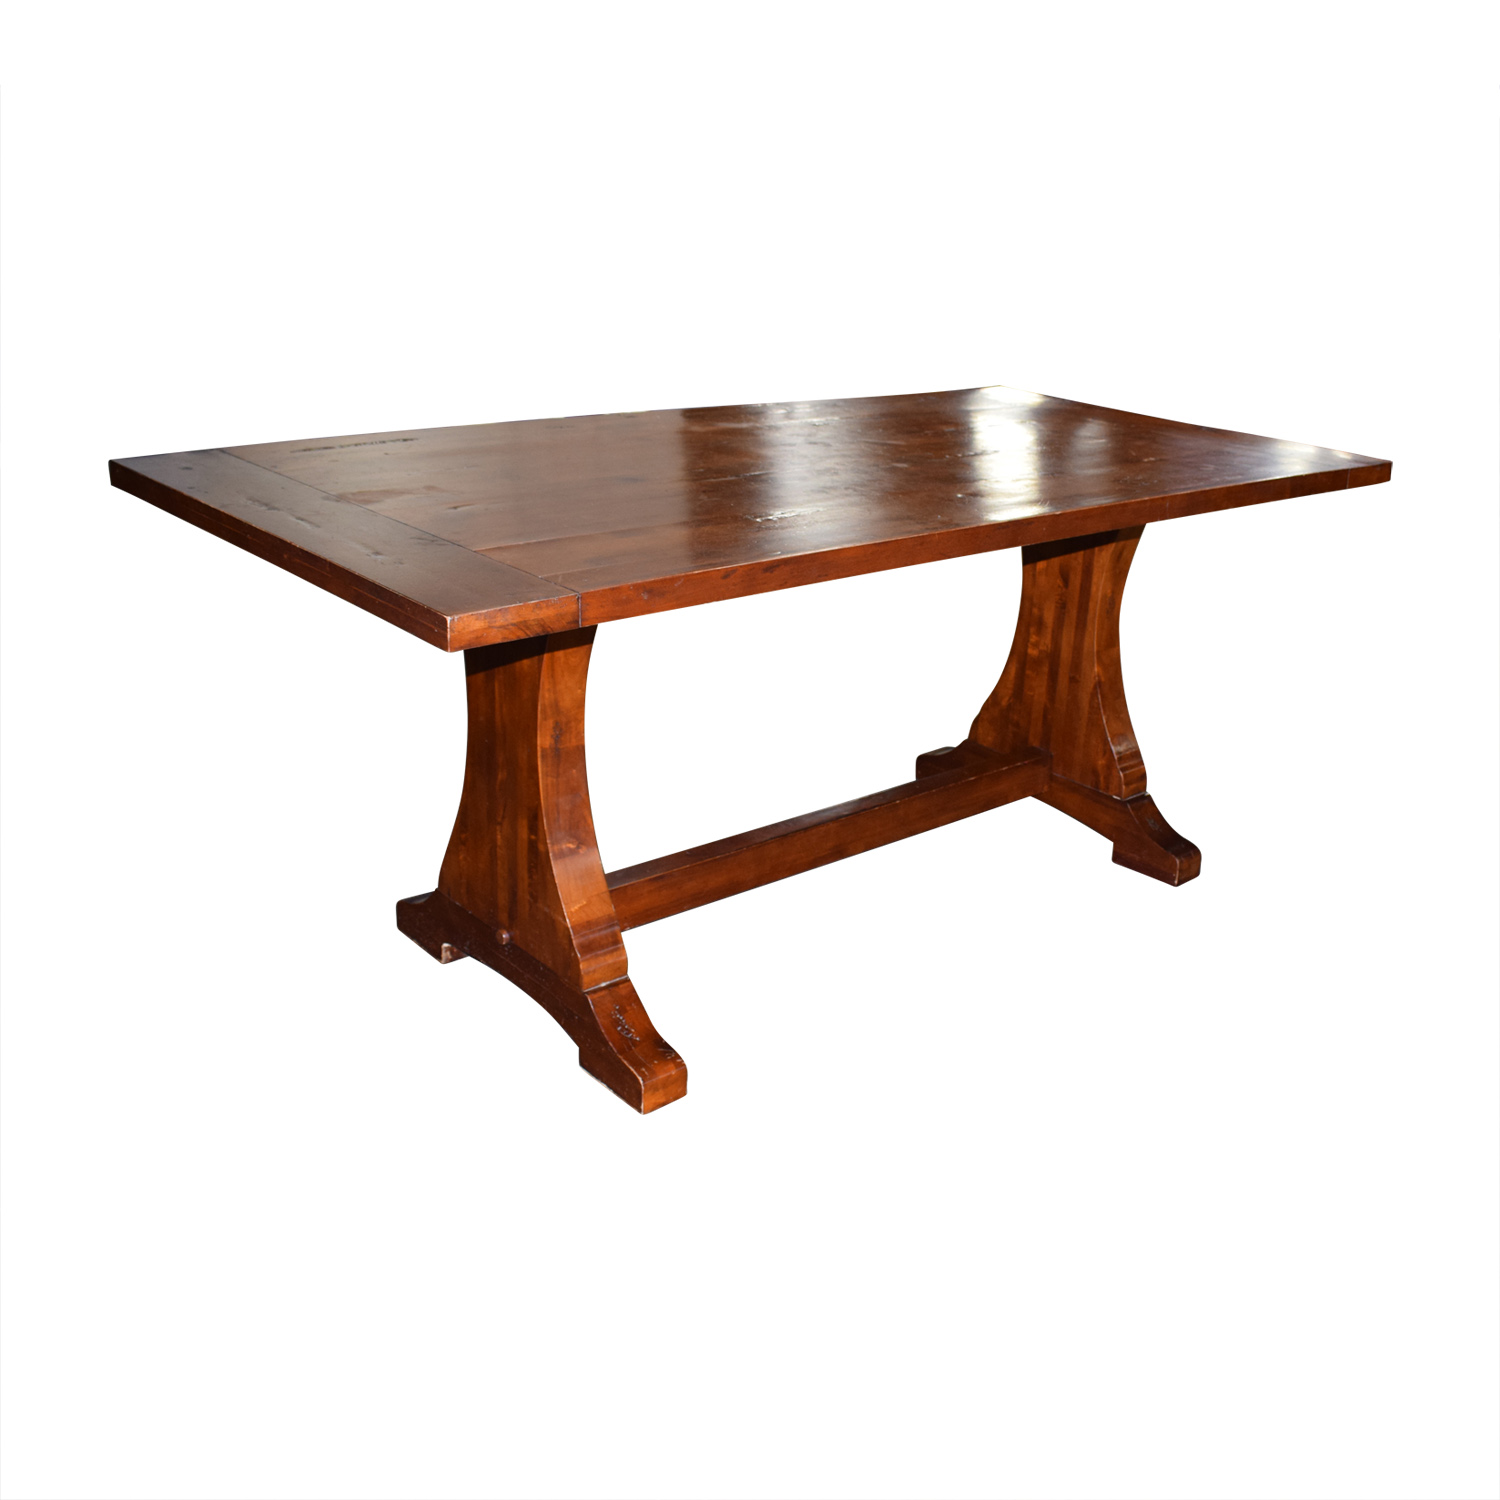 78 OFF  Ballard Designs Ballard Designs Solid Walnut